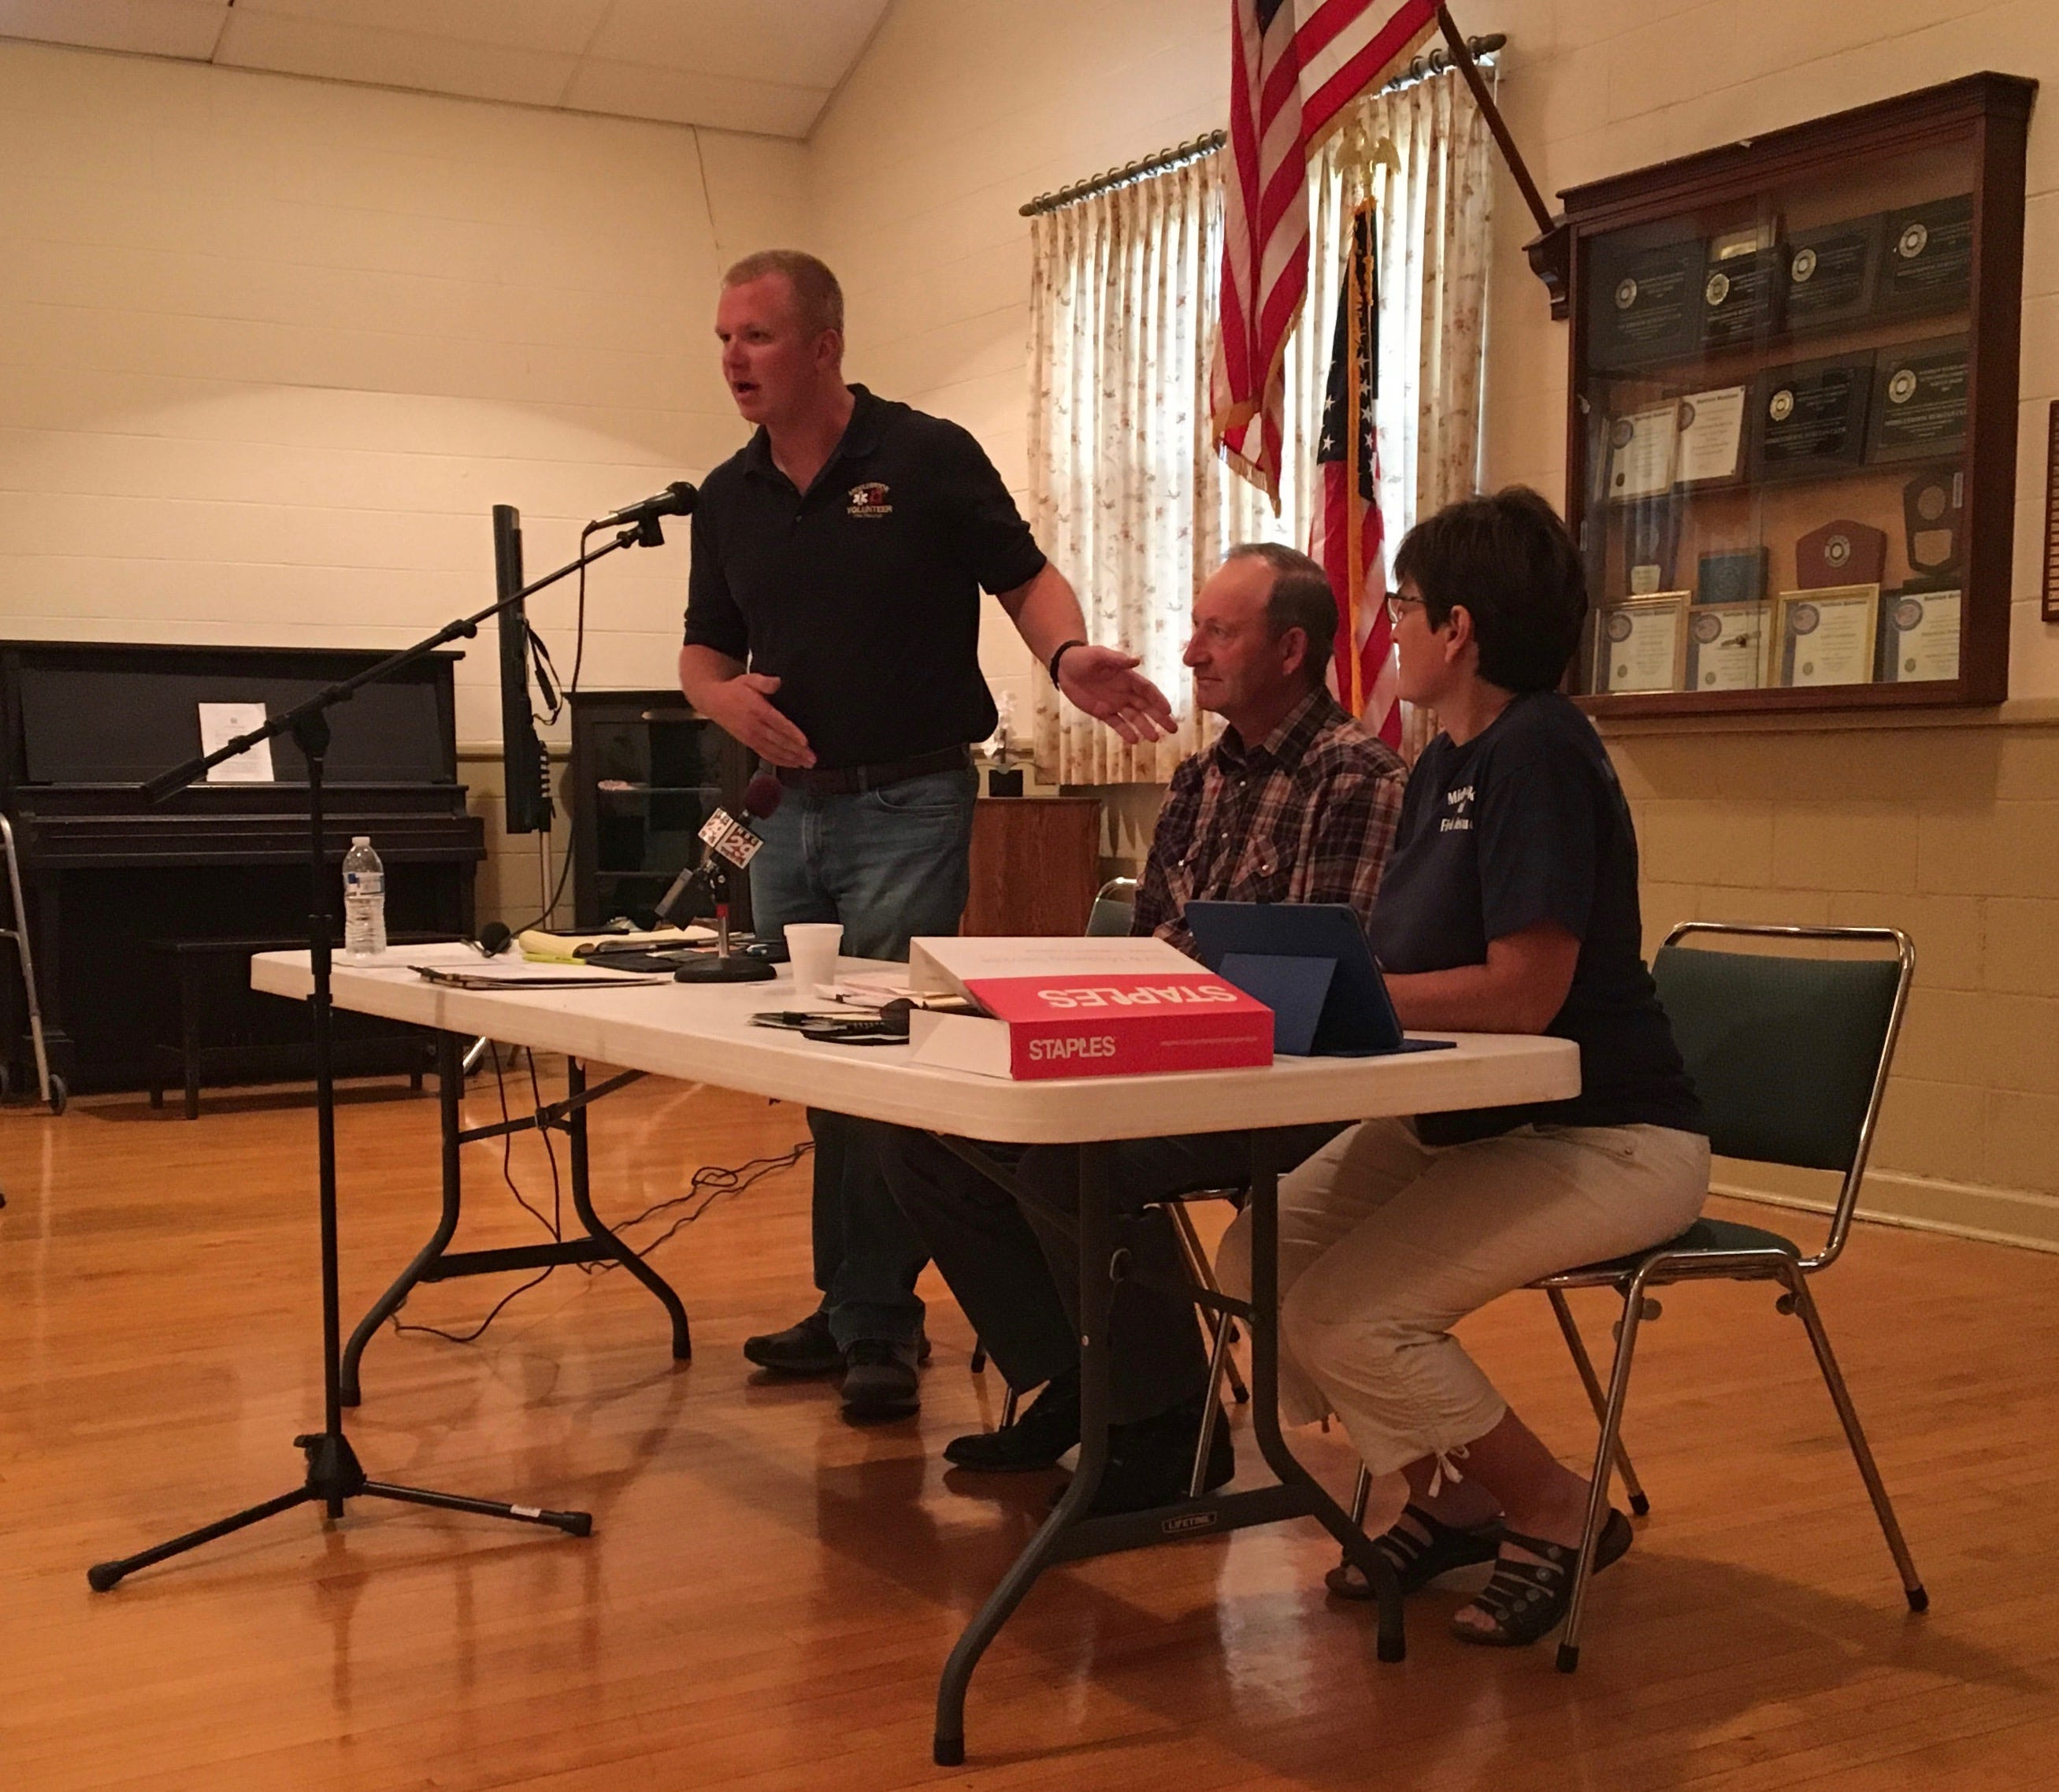 middlebrook voices fire rescue concerns at community meeting rh newsleader com